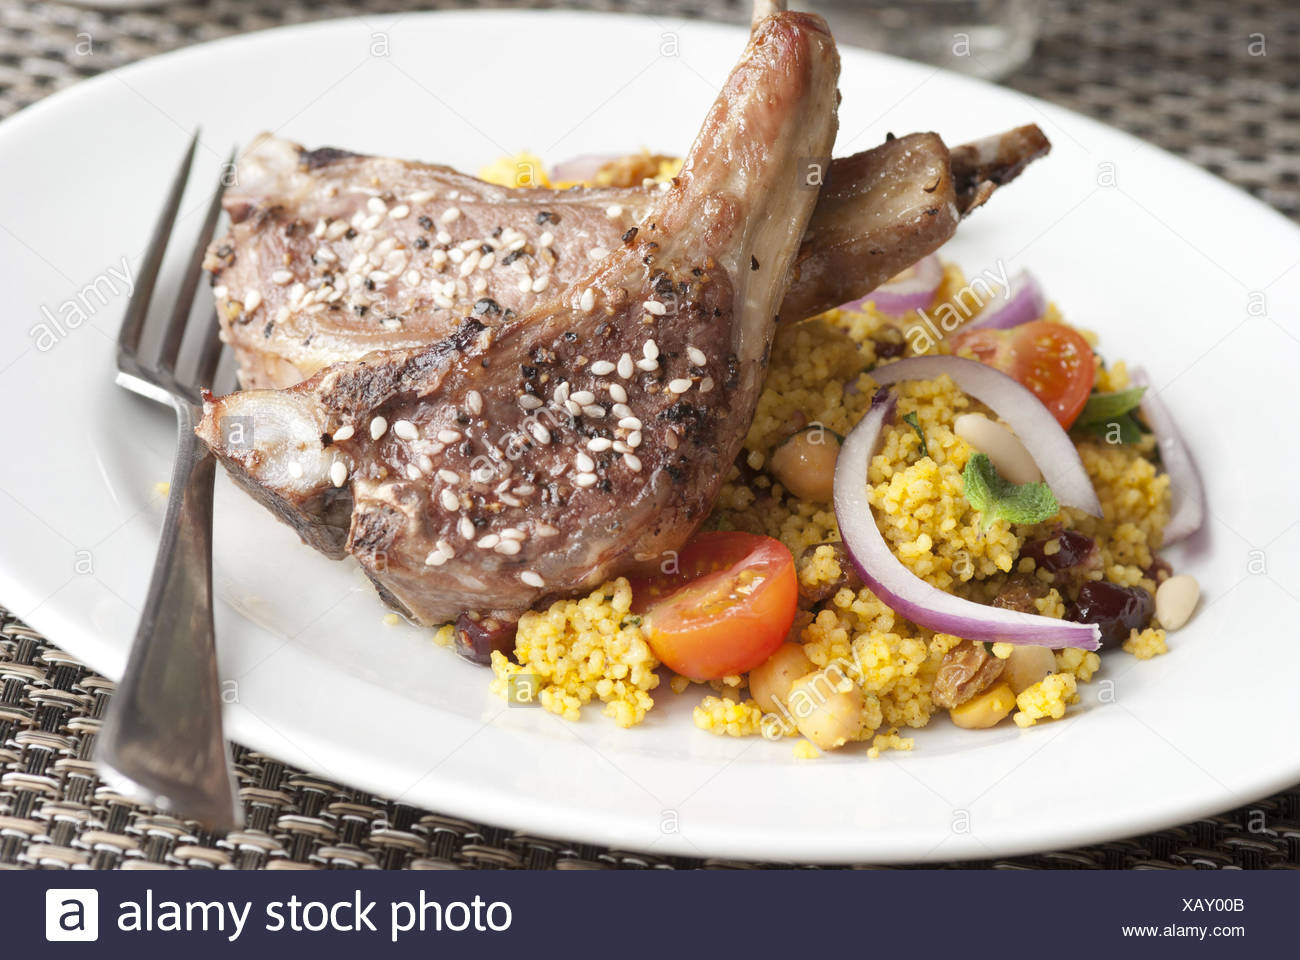 Sesame Lamb cutlets with nutty couscous on a plate. - Stock Image